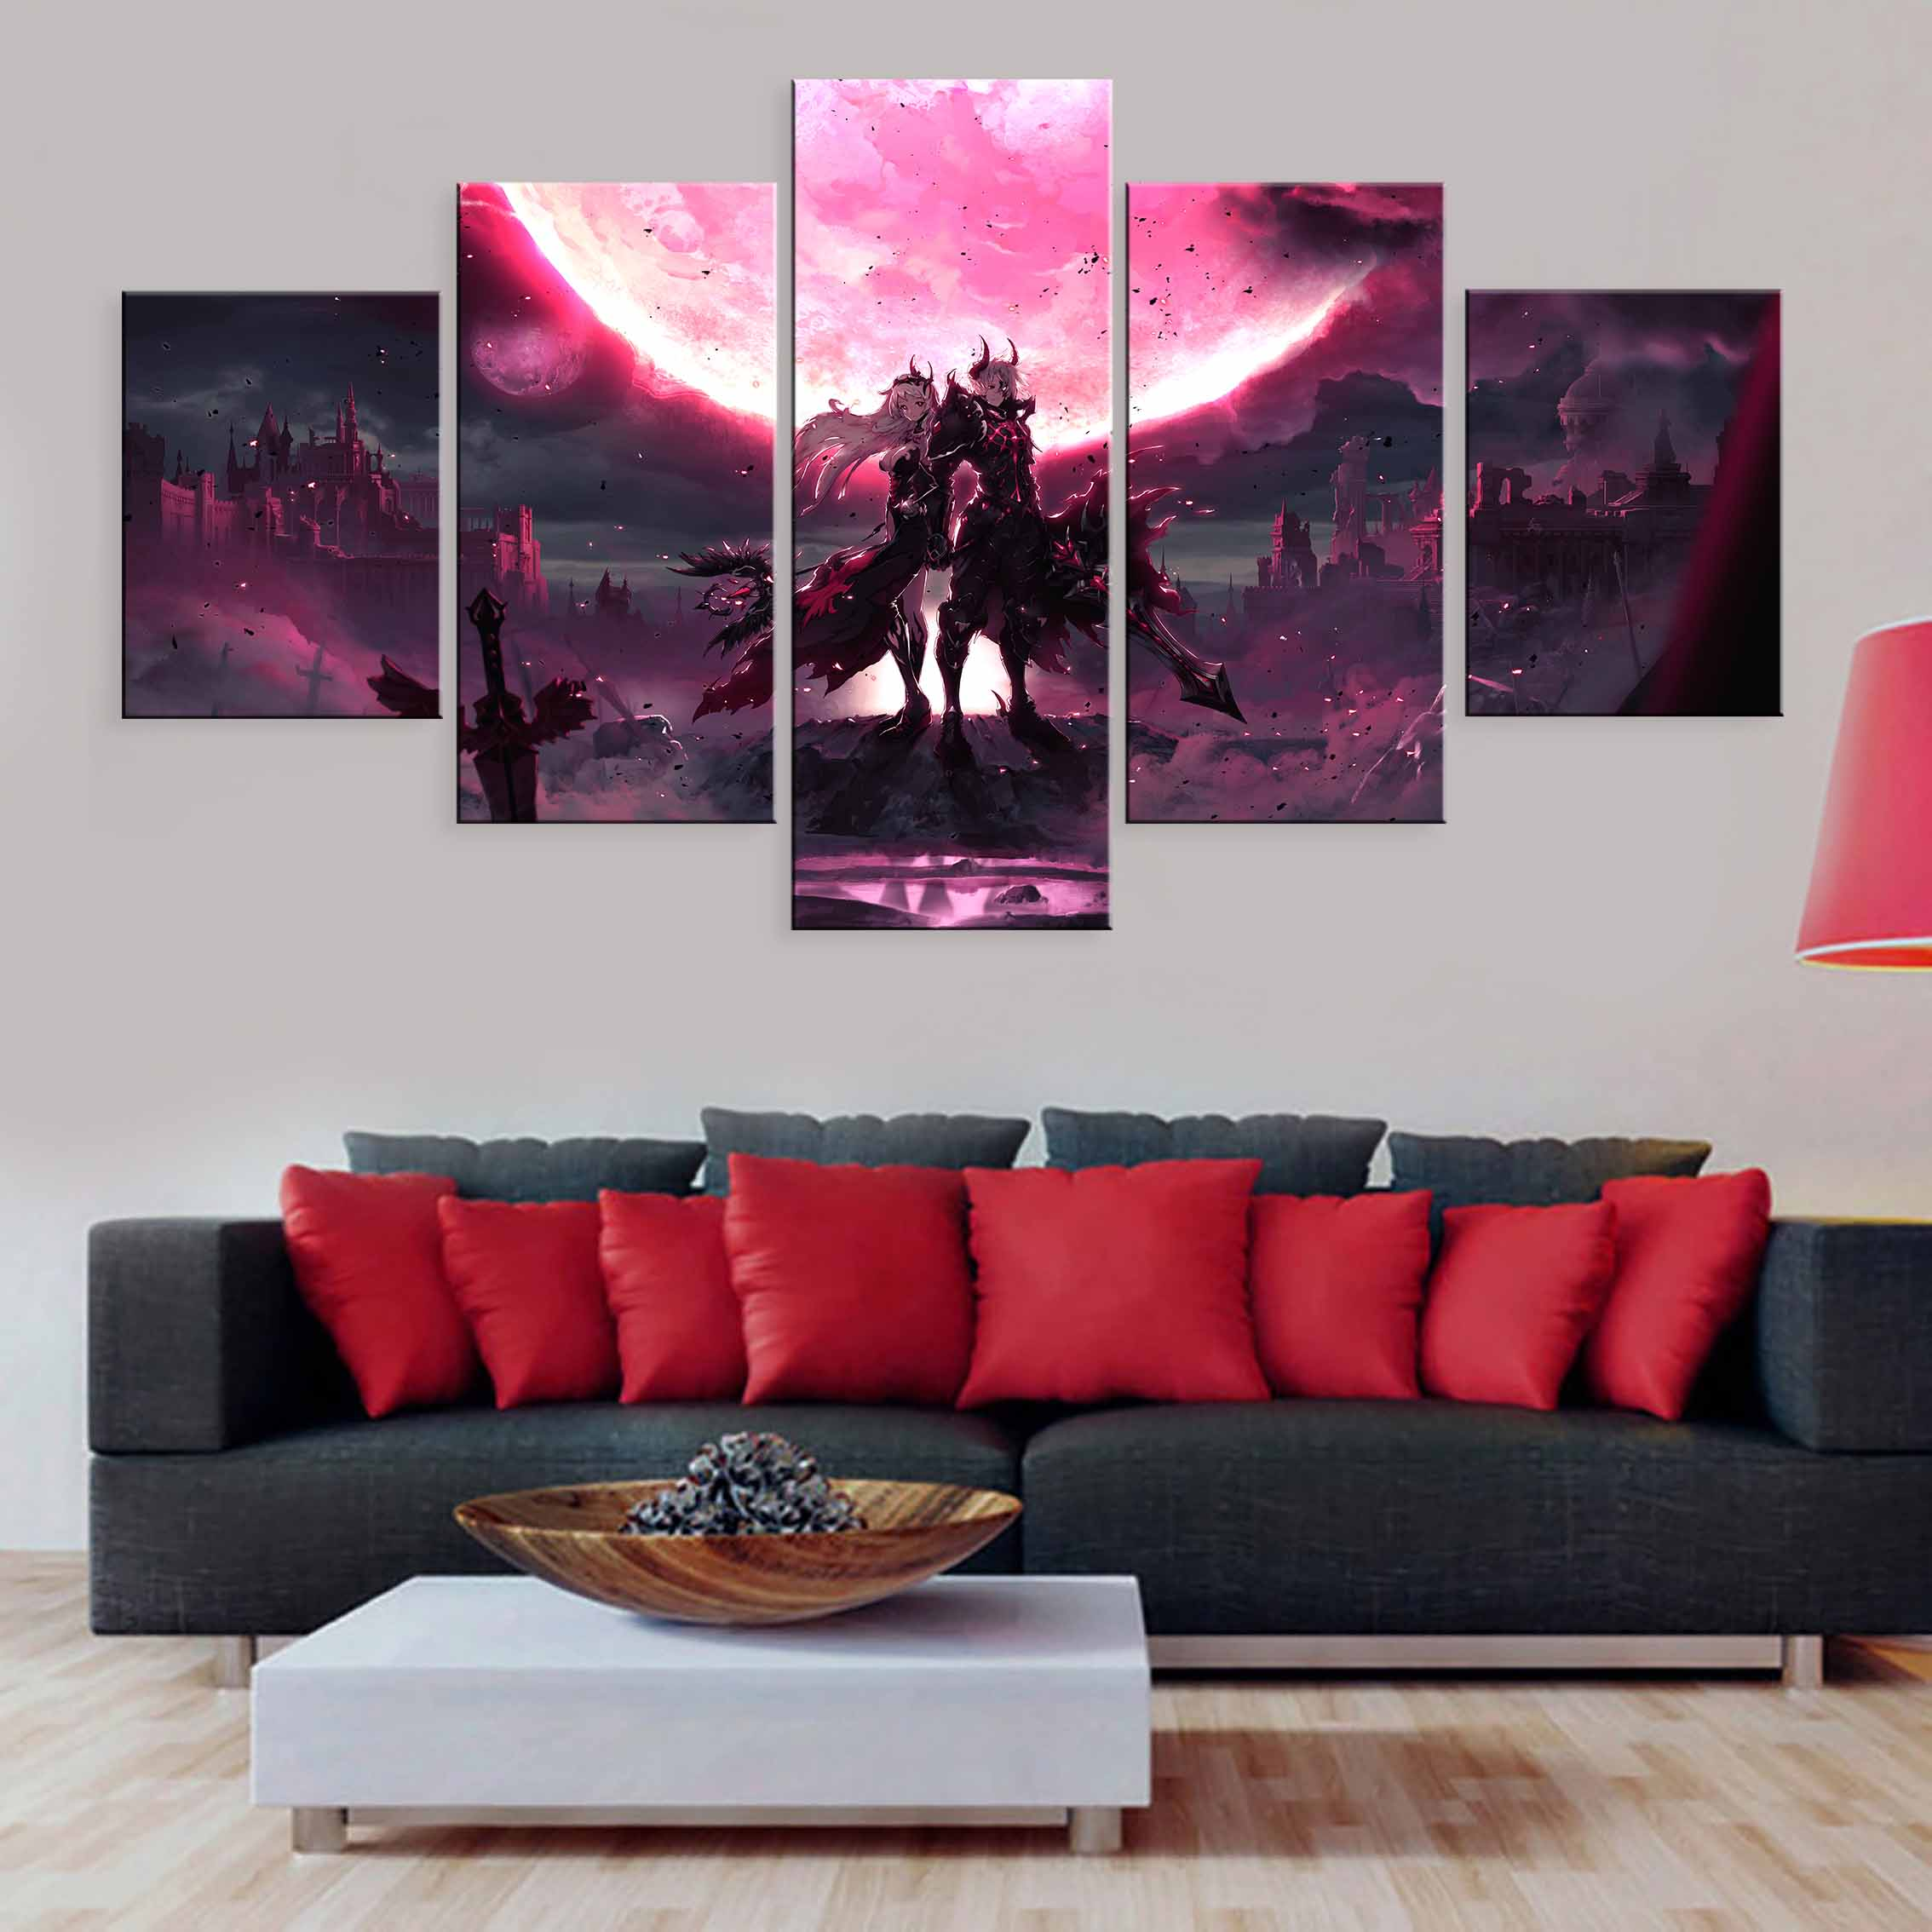 Pictures Living Room Modular Printed Cartoon Kings Raid Pandemoniumx Painting Home Decor Canvas Wall Art Poster 5 Pieces in Painting Calligraphy from Home Garden